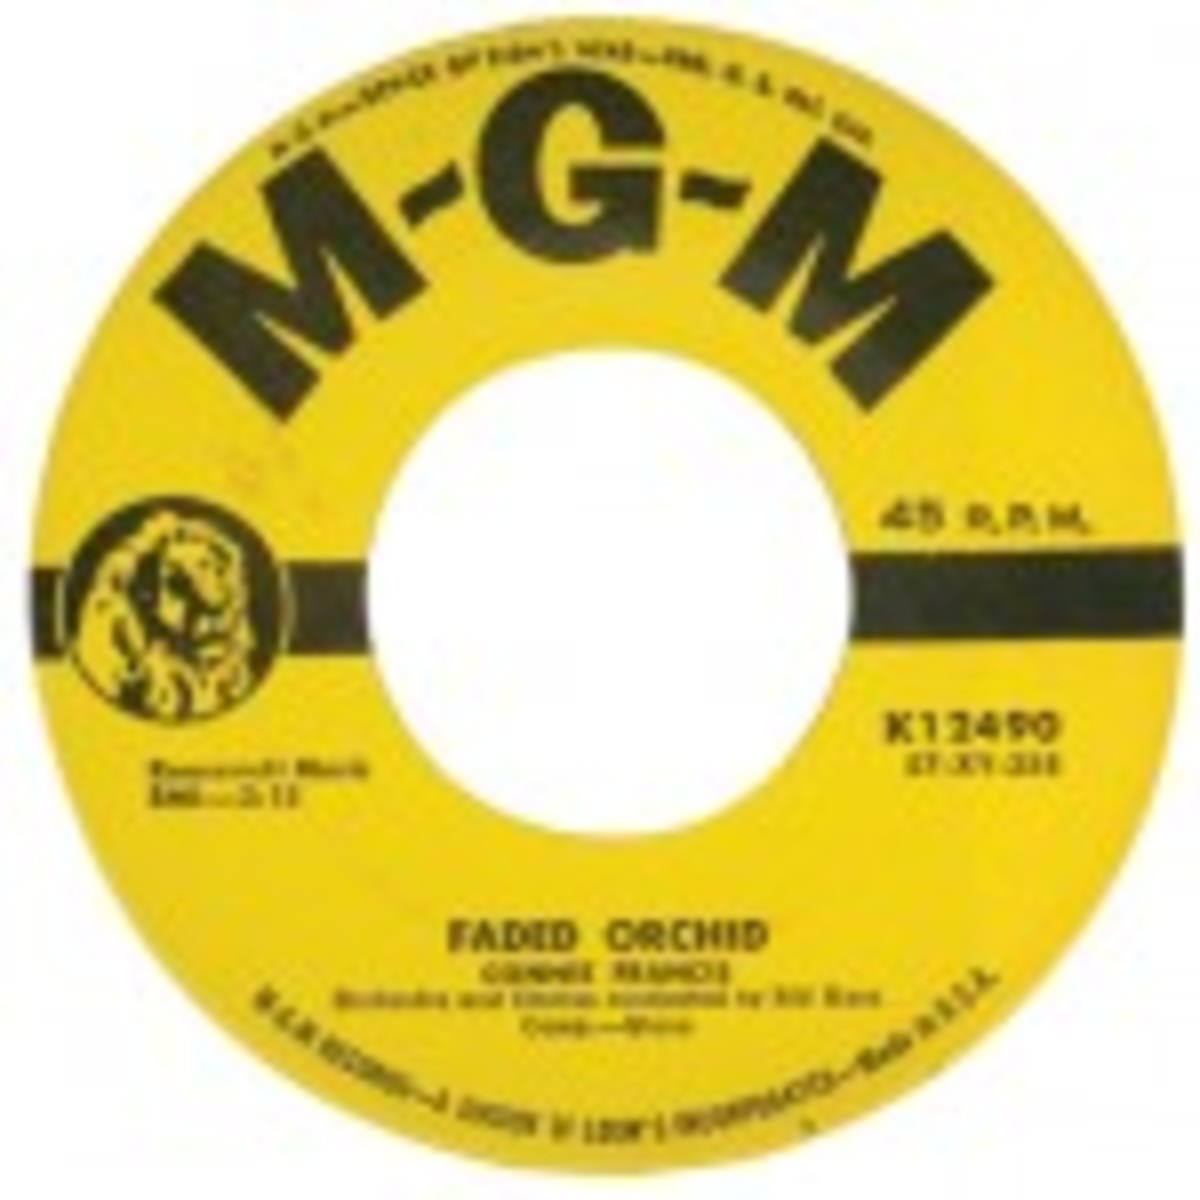 Connie Francis Faded Orchid